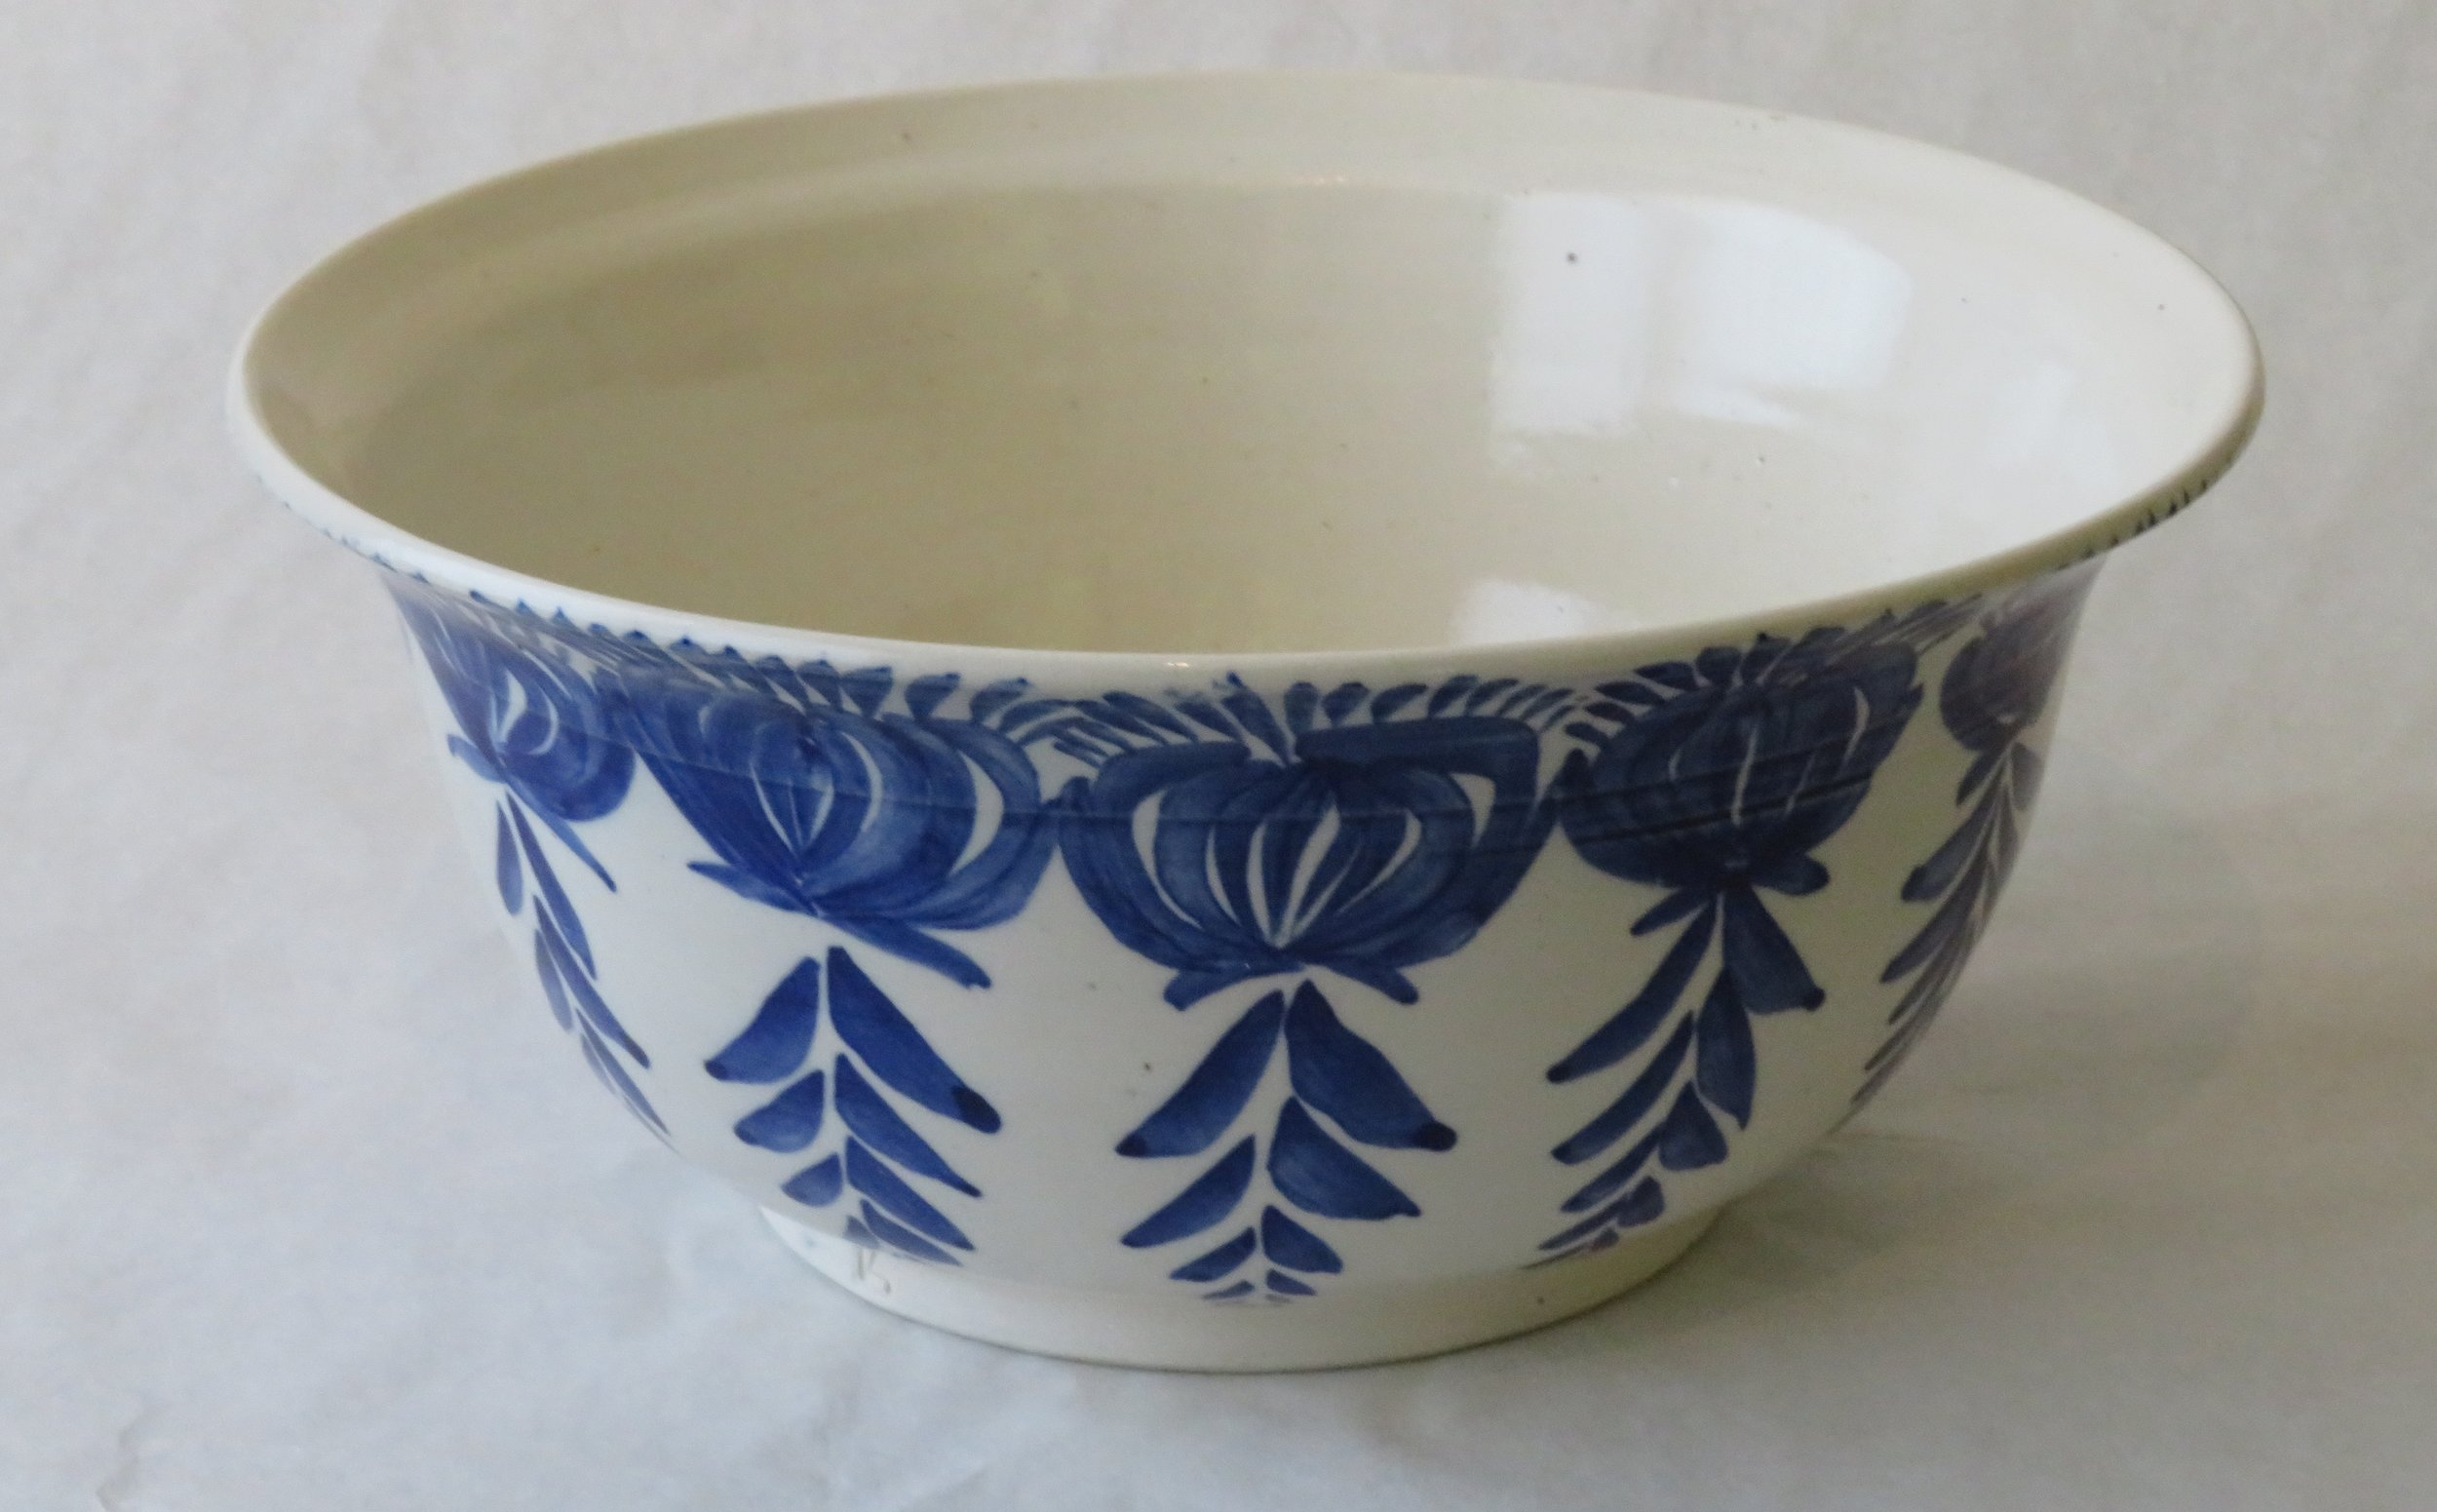 75A ILONA ANDREWS, FLOWER BOWL, CERAMIC